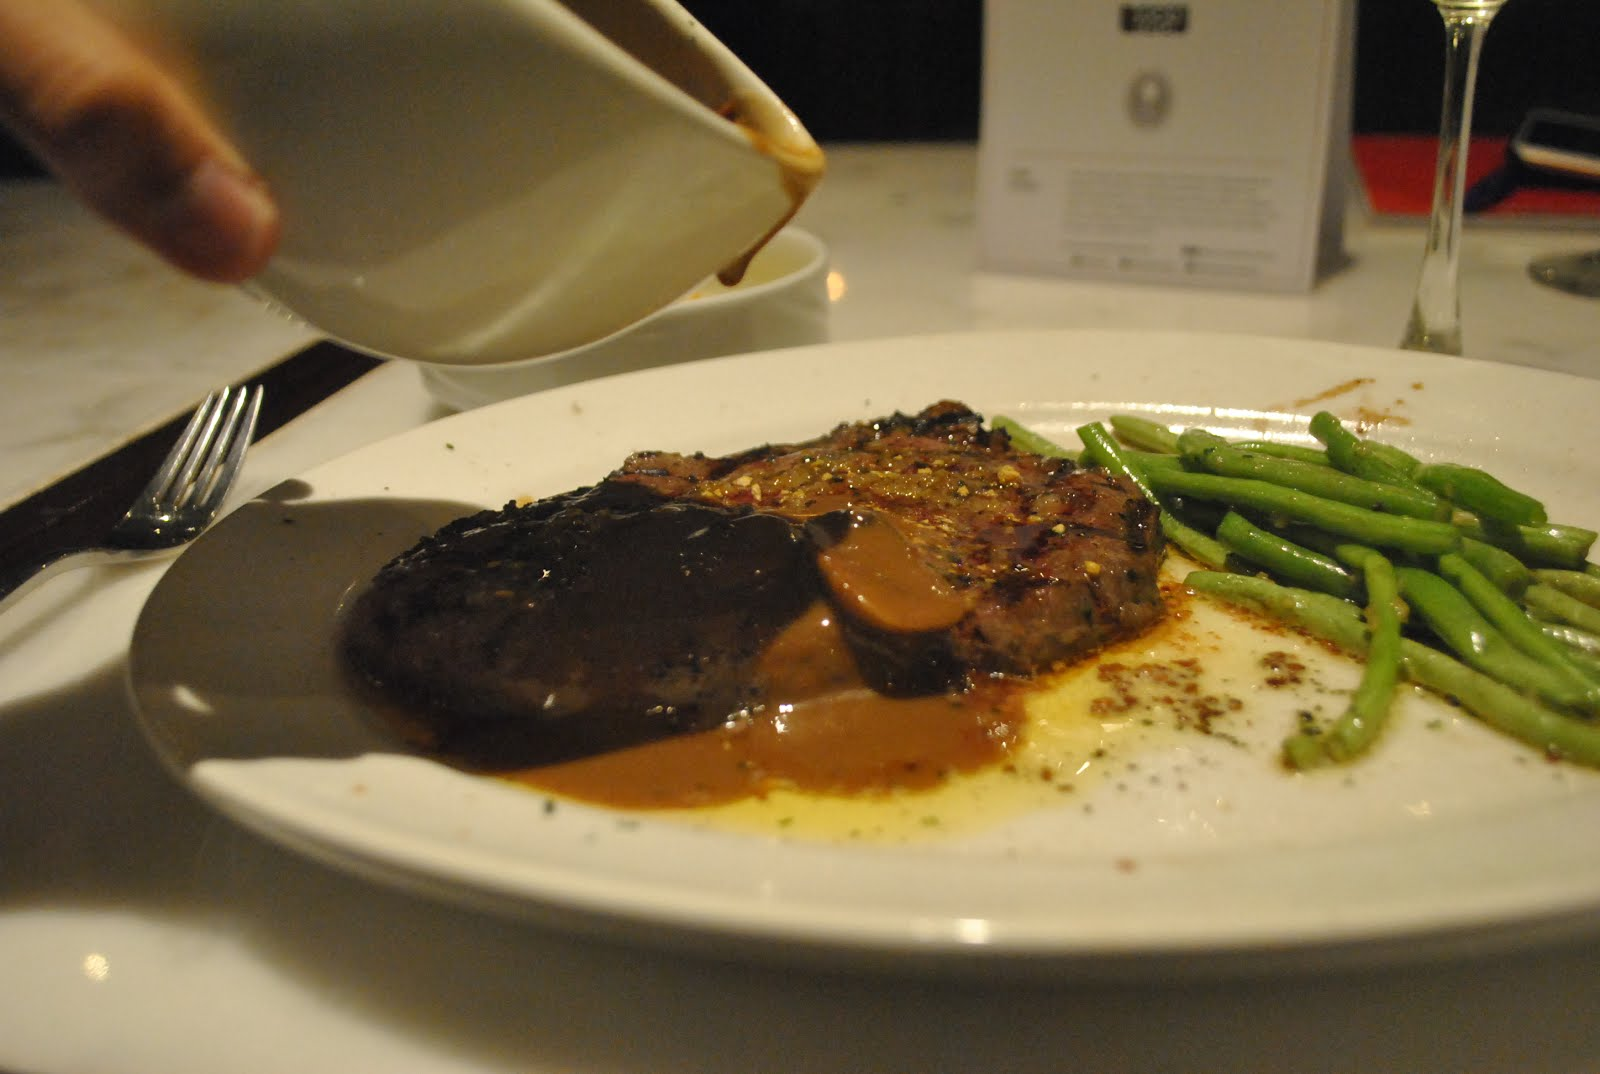 HOG ETC - Plaza Indonesia : Making out with the Steak - Entrecote Steak 4